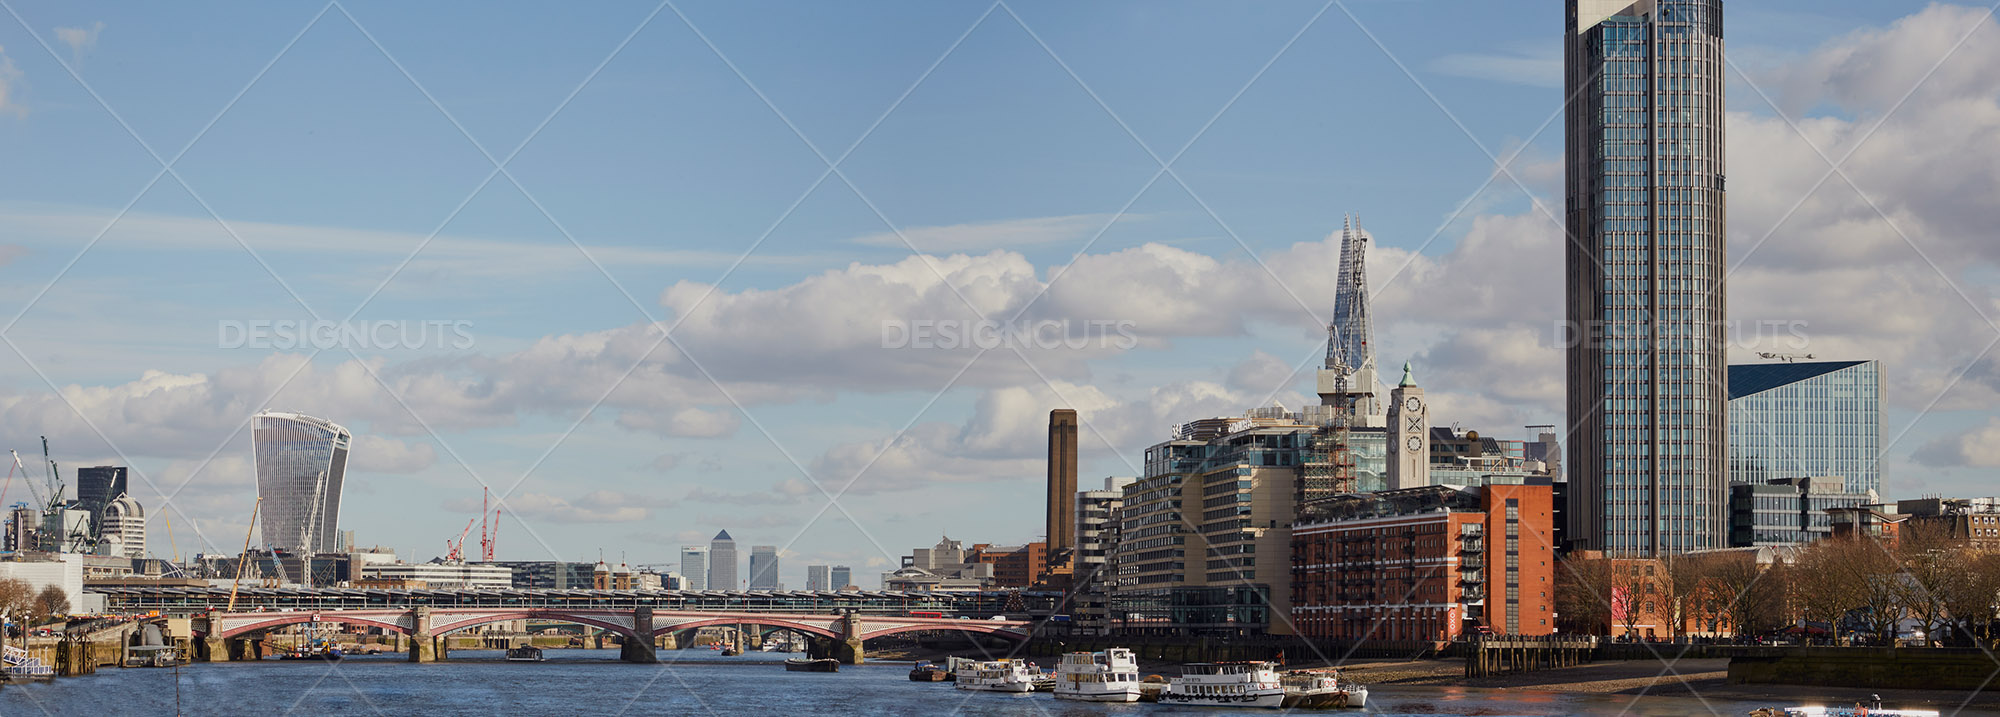 Panoramic View Of London Landmarks On River Thames